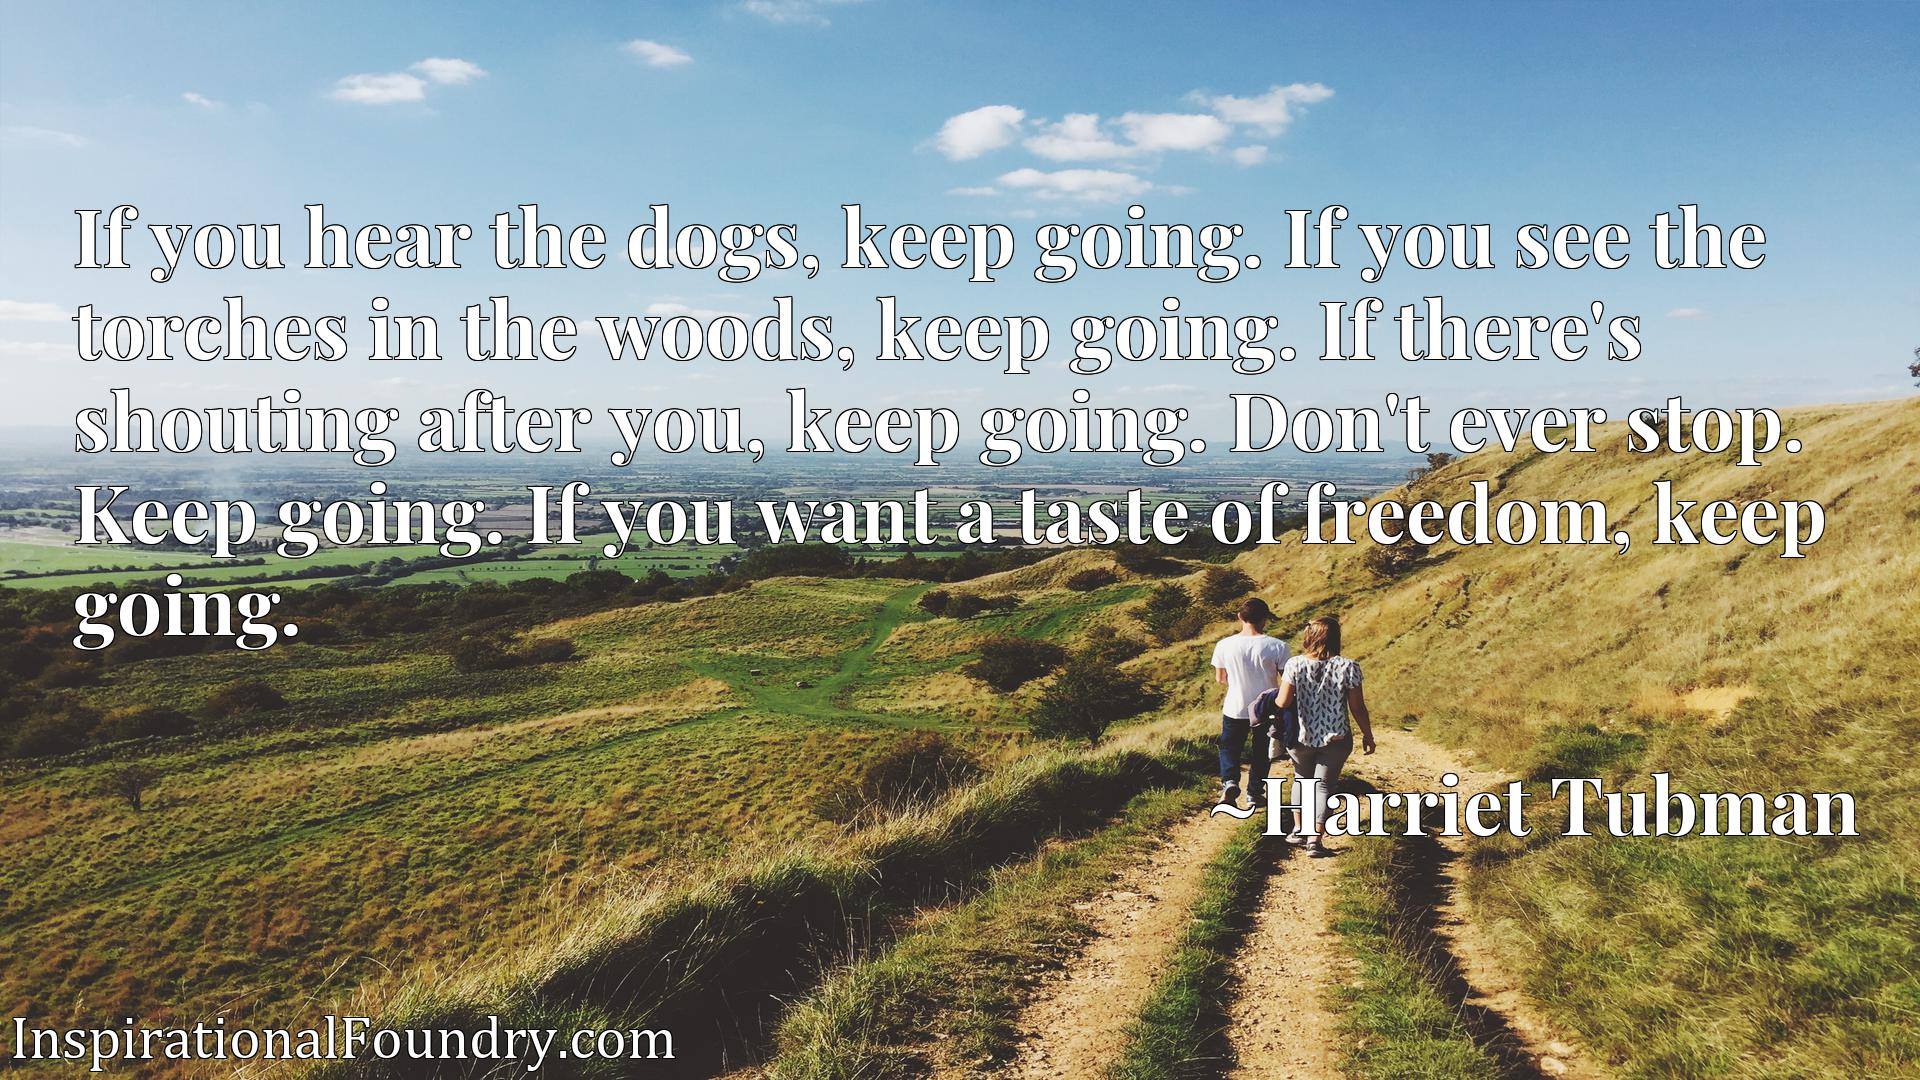 If you hear the dogs, keep going. If you see the torches in the woods, keep going. If there's shouting after you, keep going. Don't ever stop. Keep going. If you want a taste of freedom, keep going.